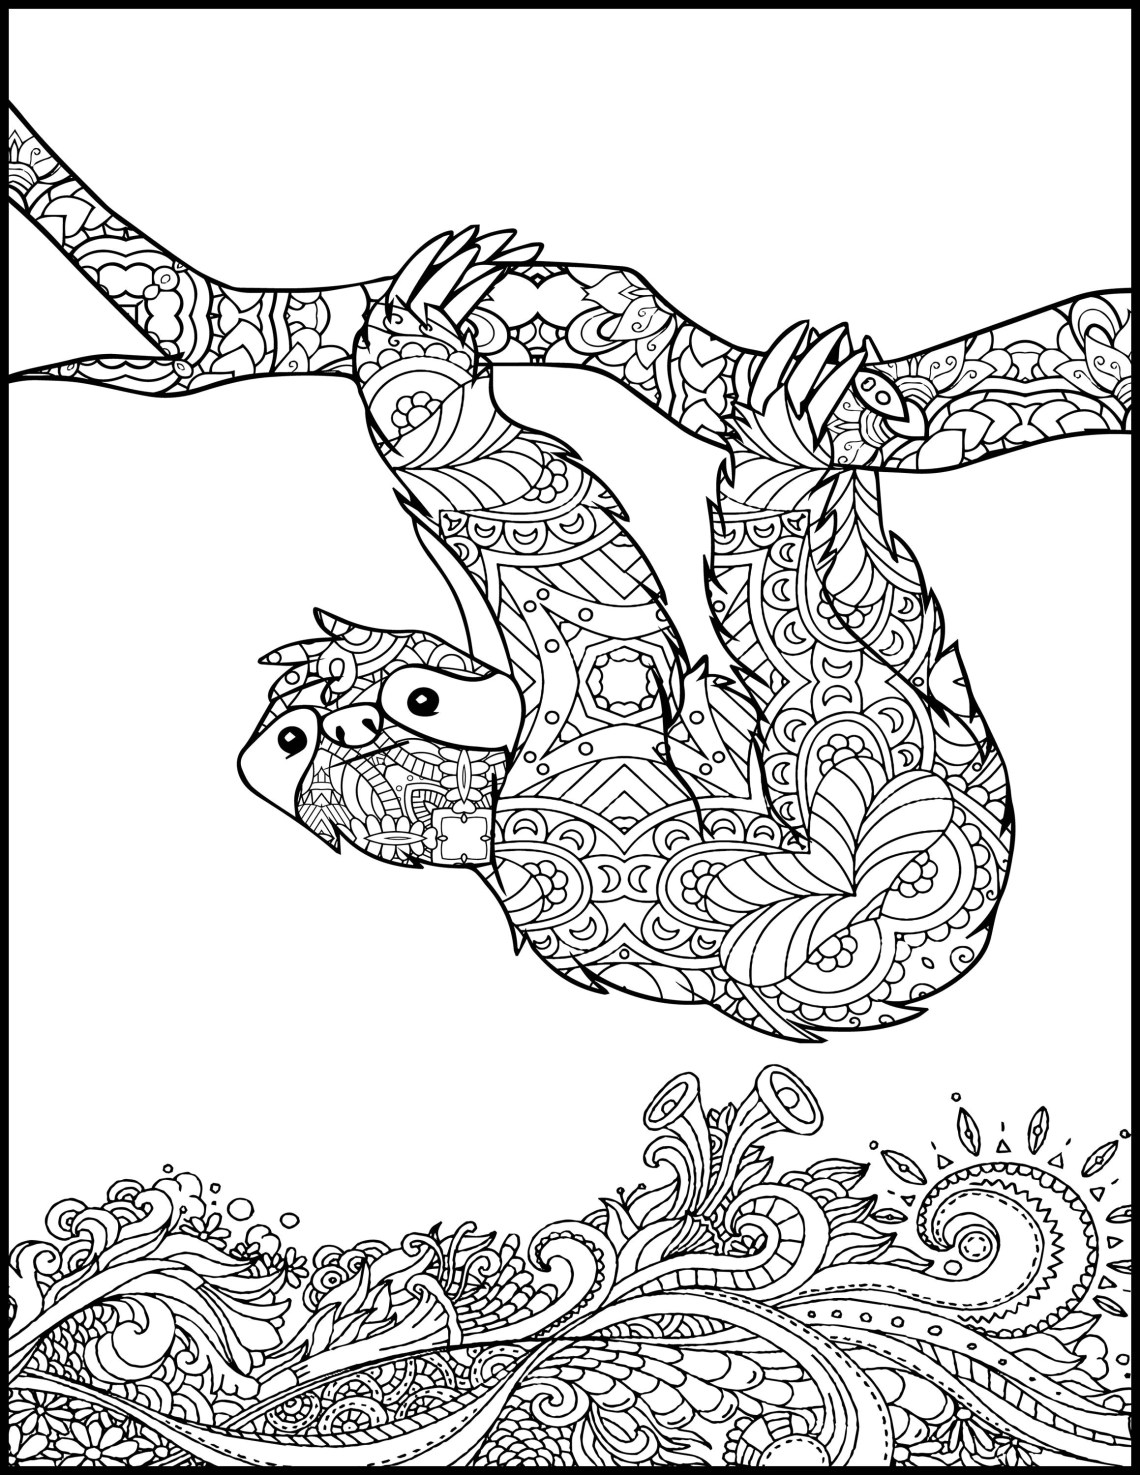 Printable Coloring Page Adult Coloring Page Animal | printable colouring pages for adults animals